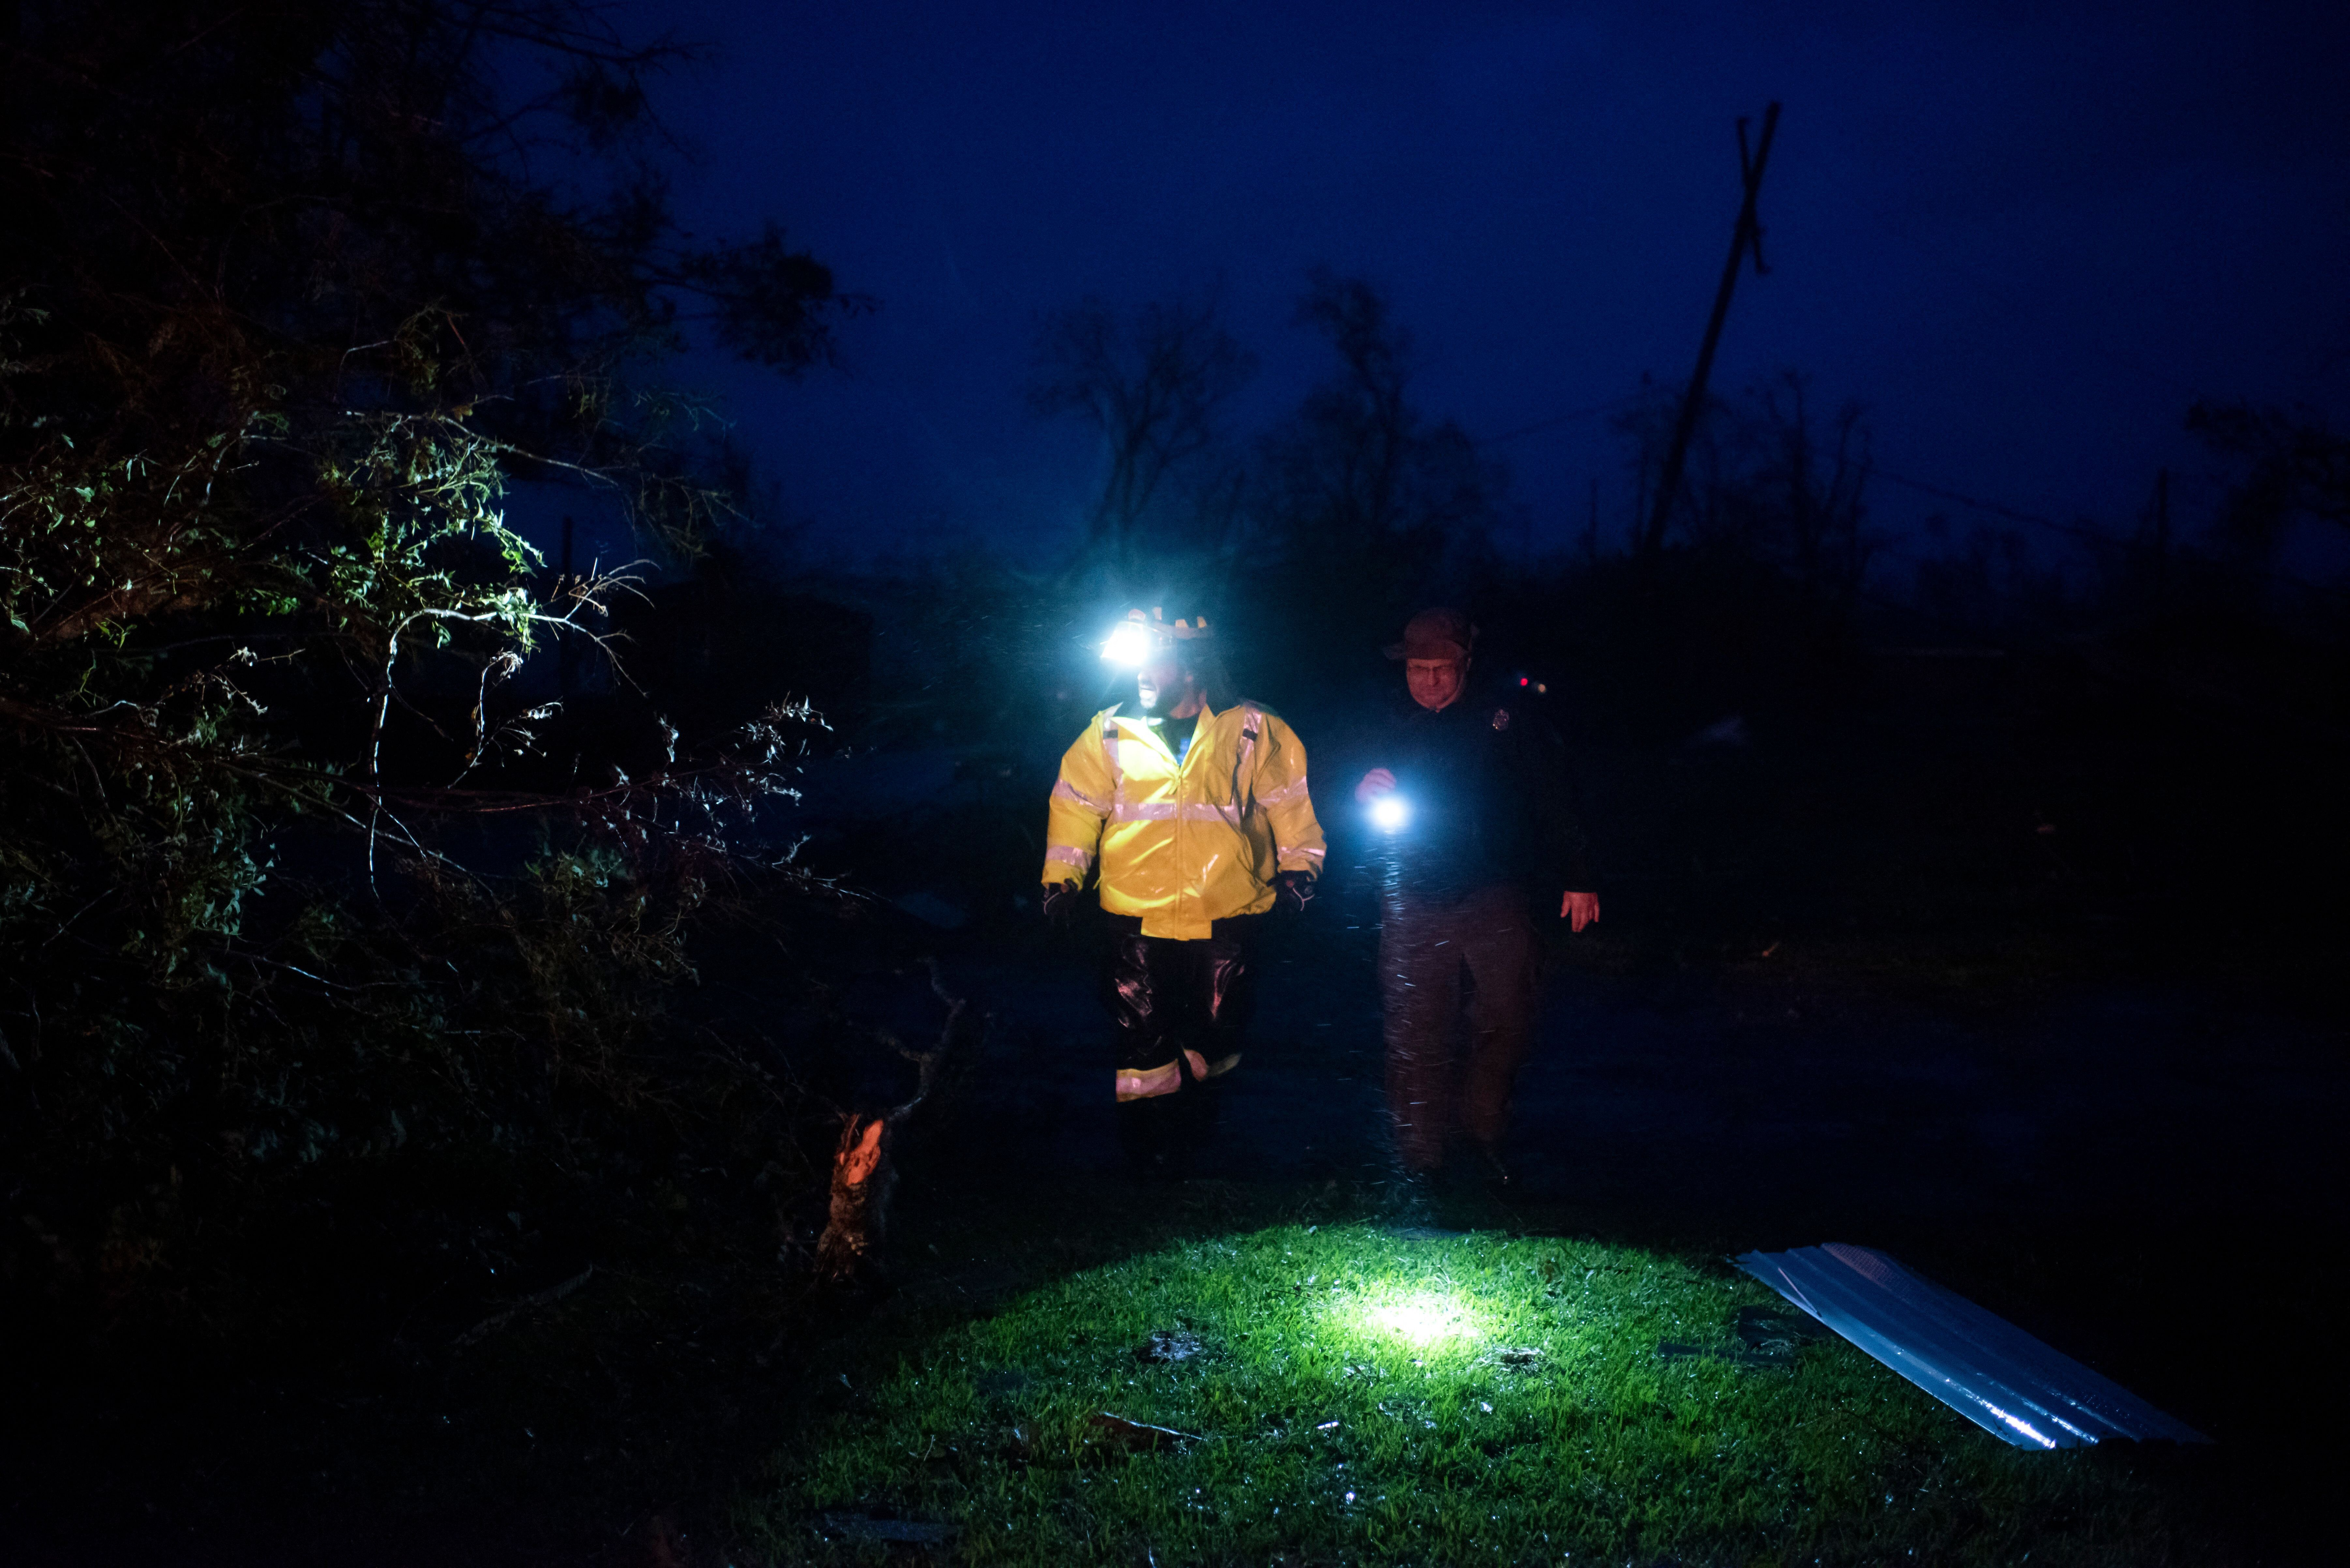 Montegut and Bourg firefighters cut through trees on the road in Bourg, Louisiana as Hurricane Ida passes on August 29, 2021.